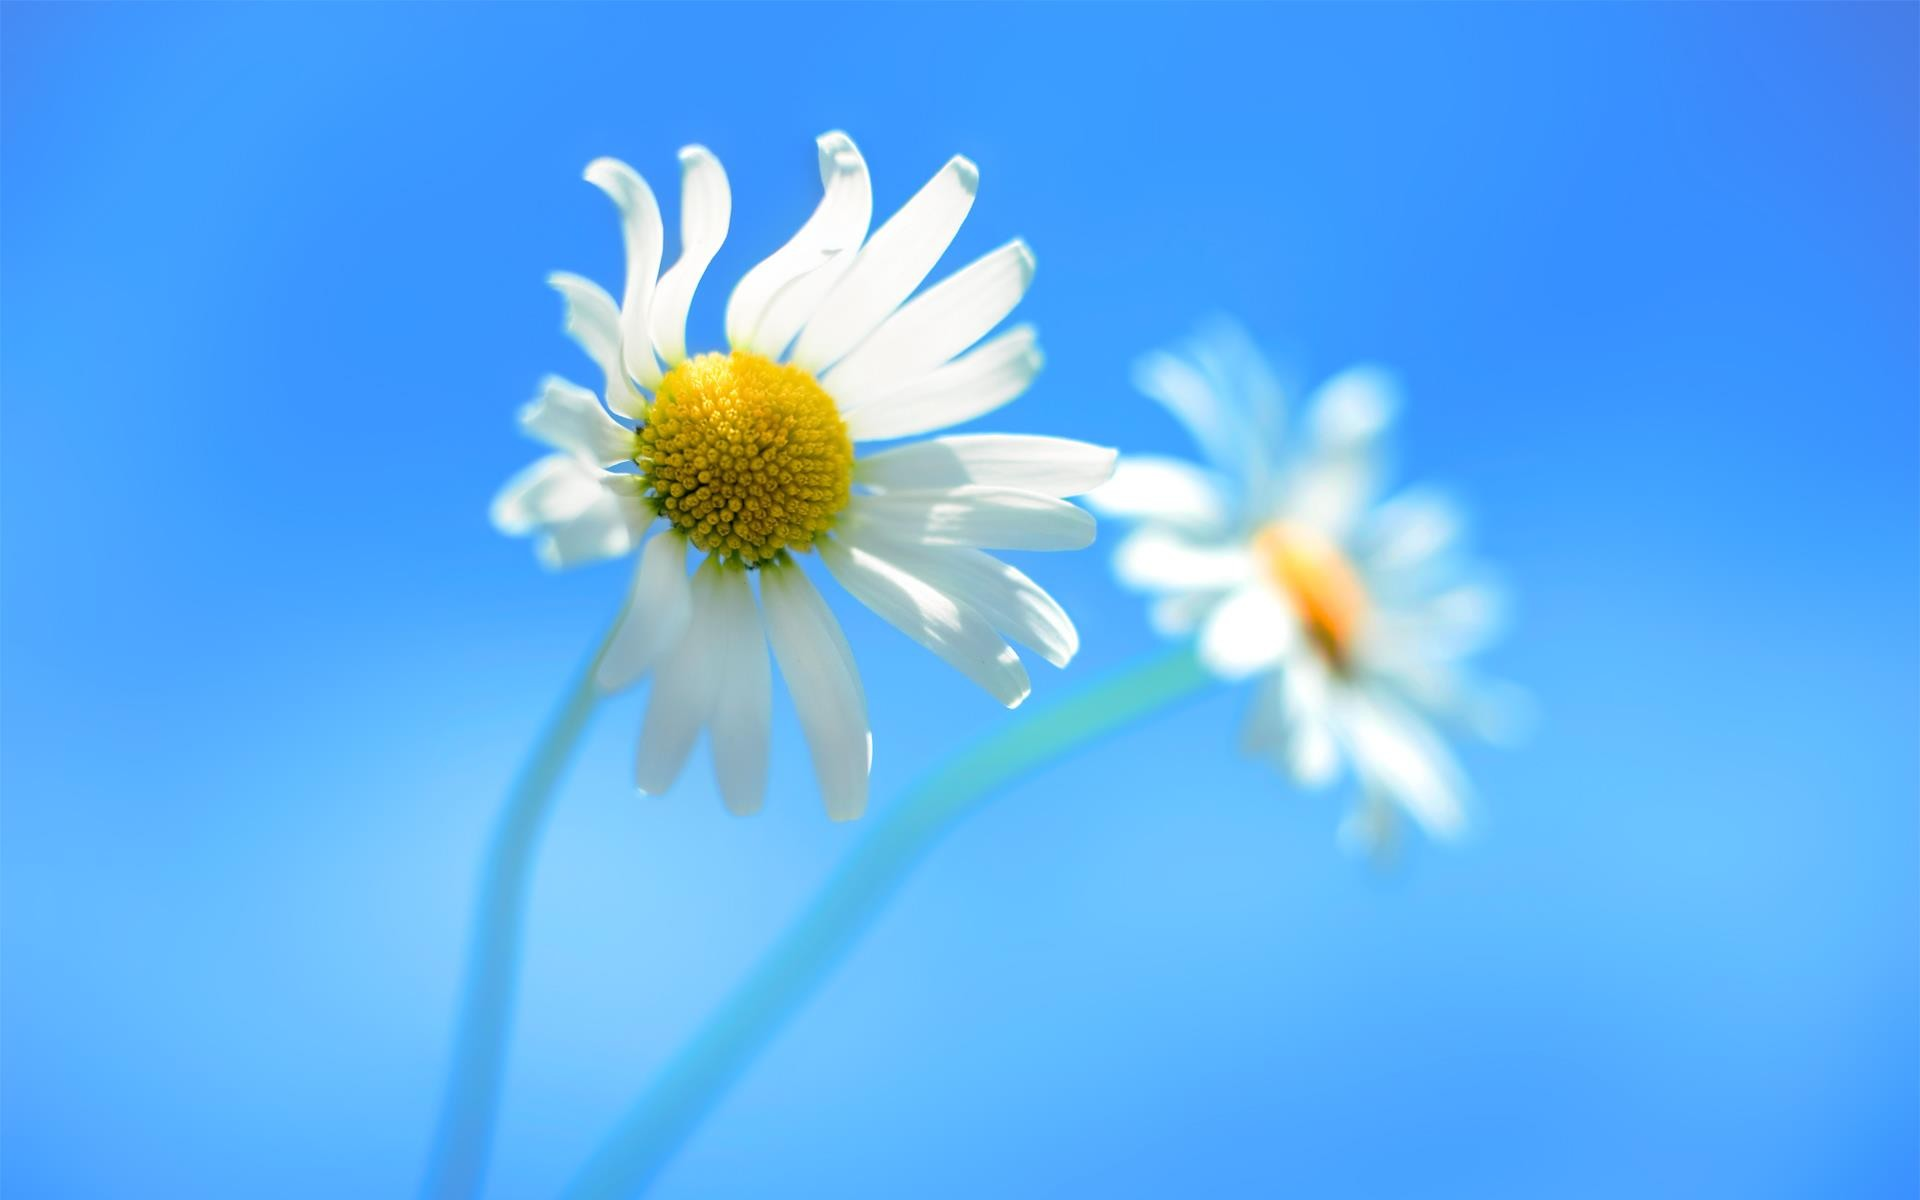 64+ Windows desktop backgrounds ·① Download free awesome